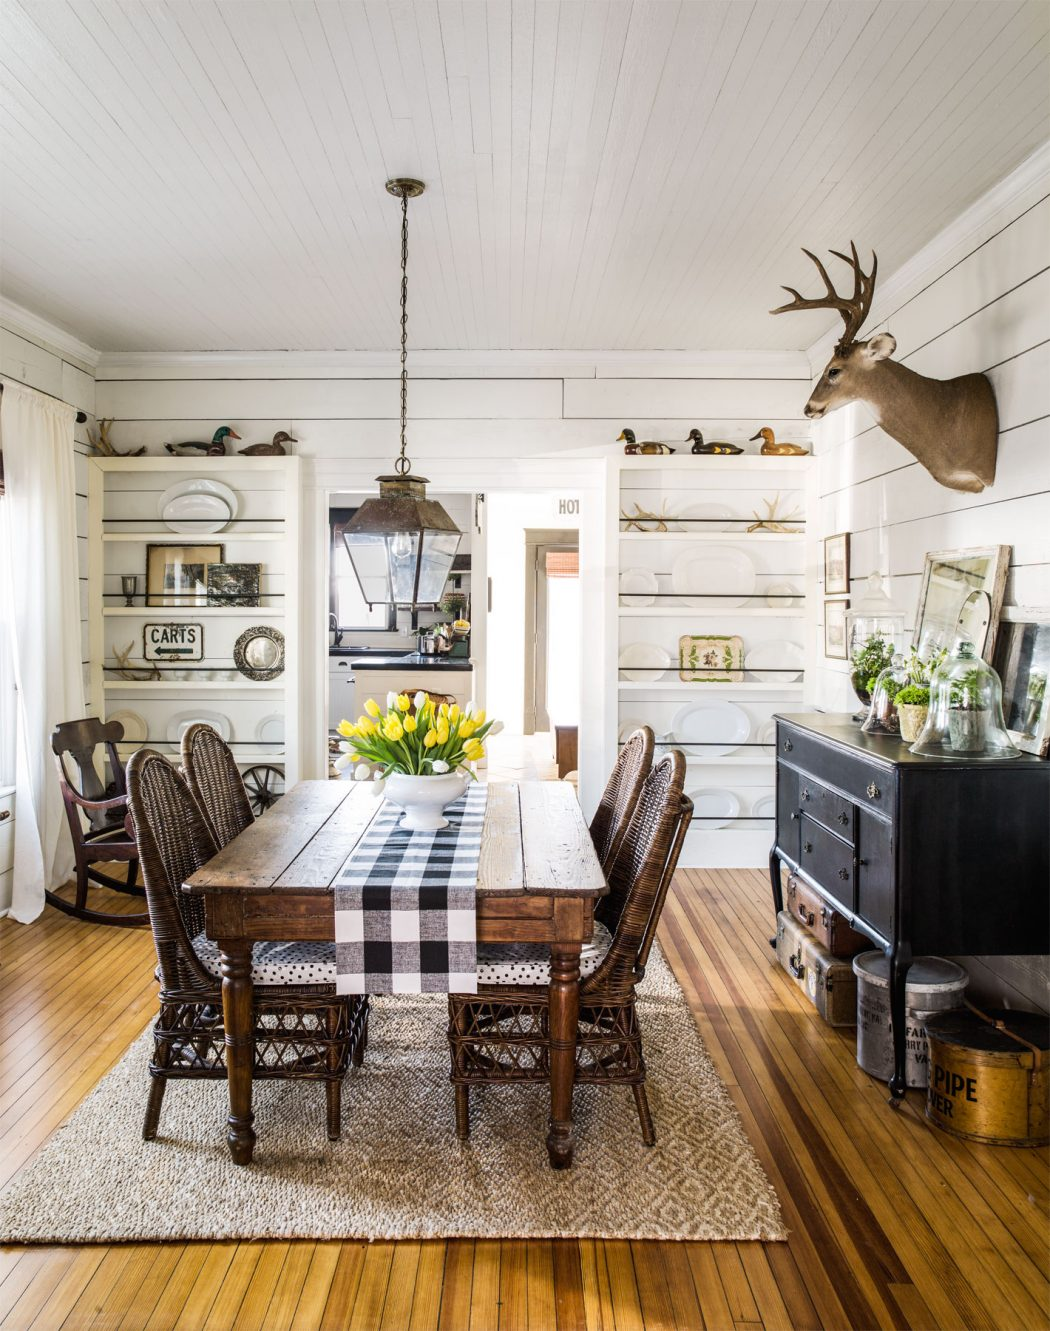 Dine-like-you-are-in-a-farmhouse5 +15 Best Luxurious and Modern Dining Room Design for 2017